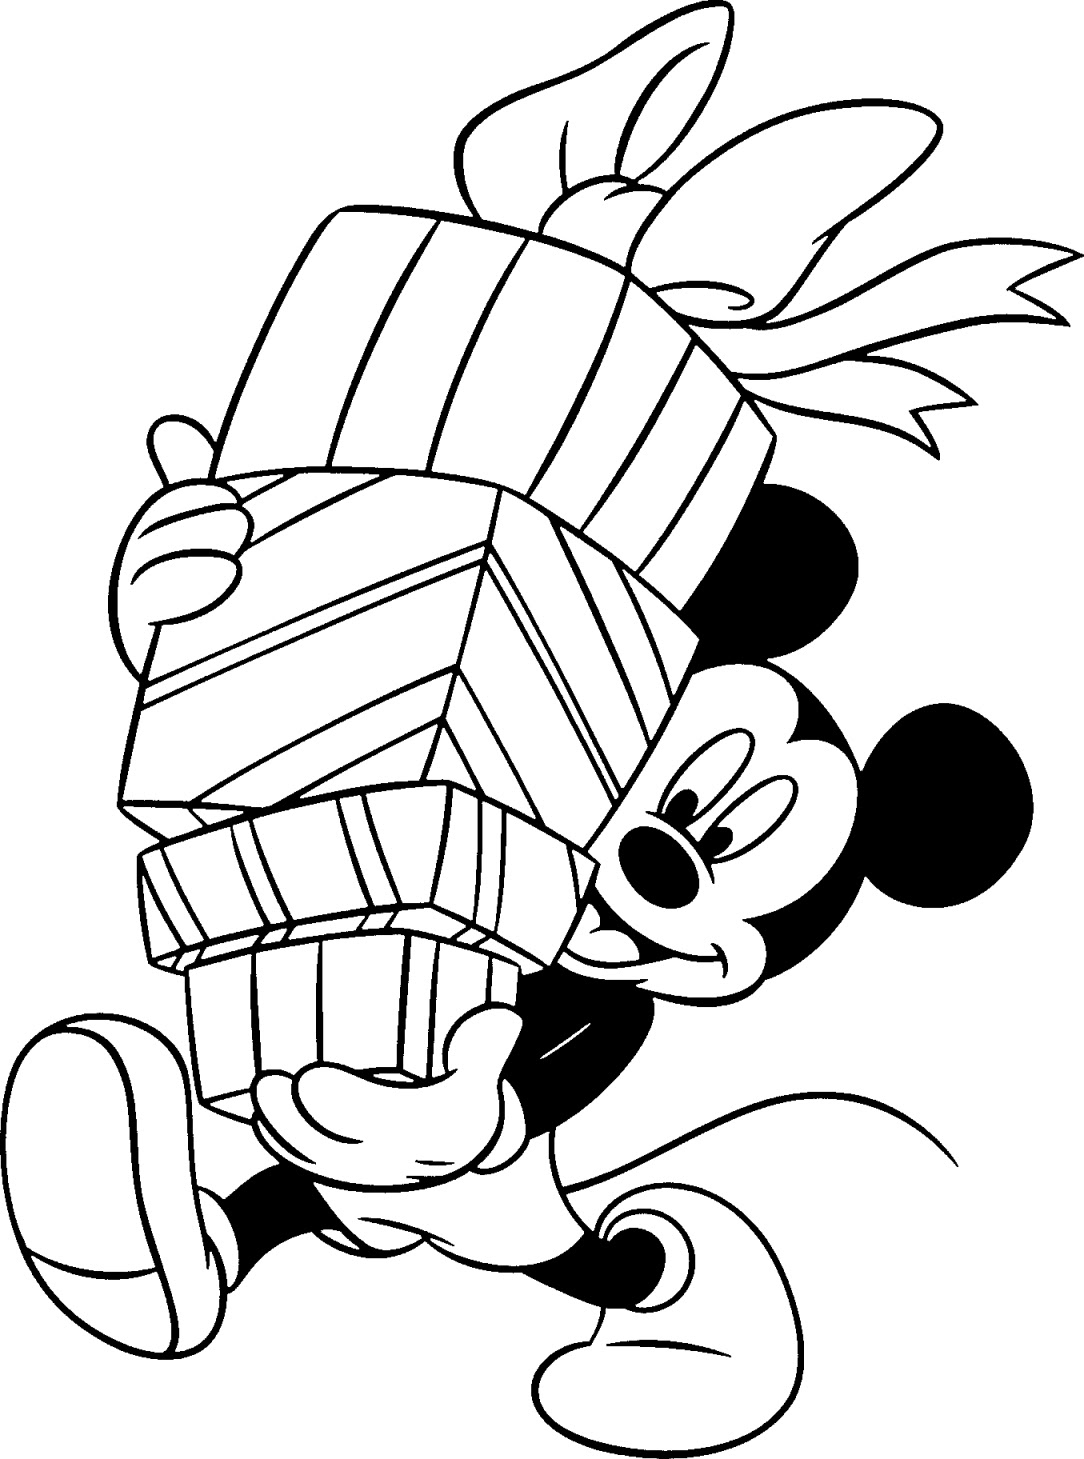 5400 Top Christmas Coloring Pages Cartoon Characters For Free